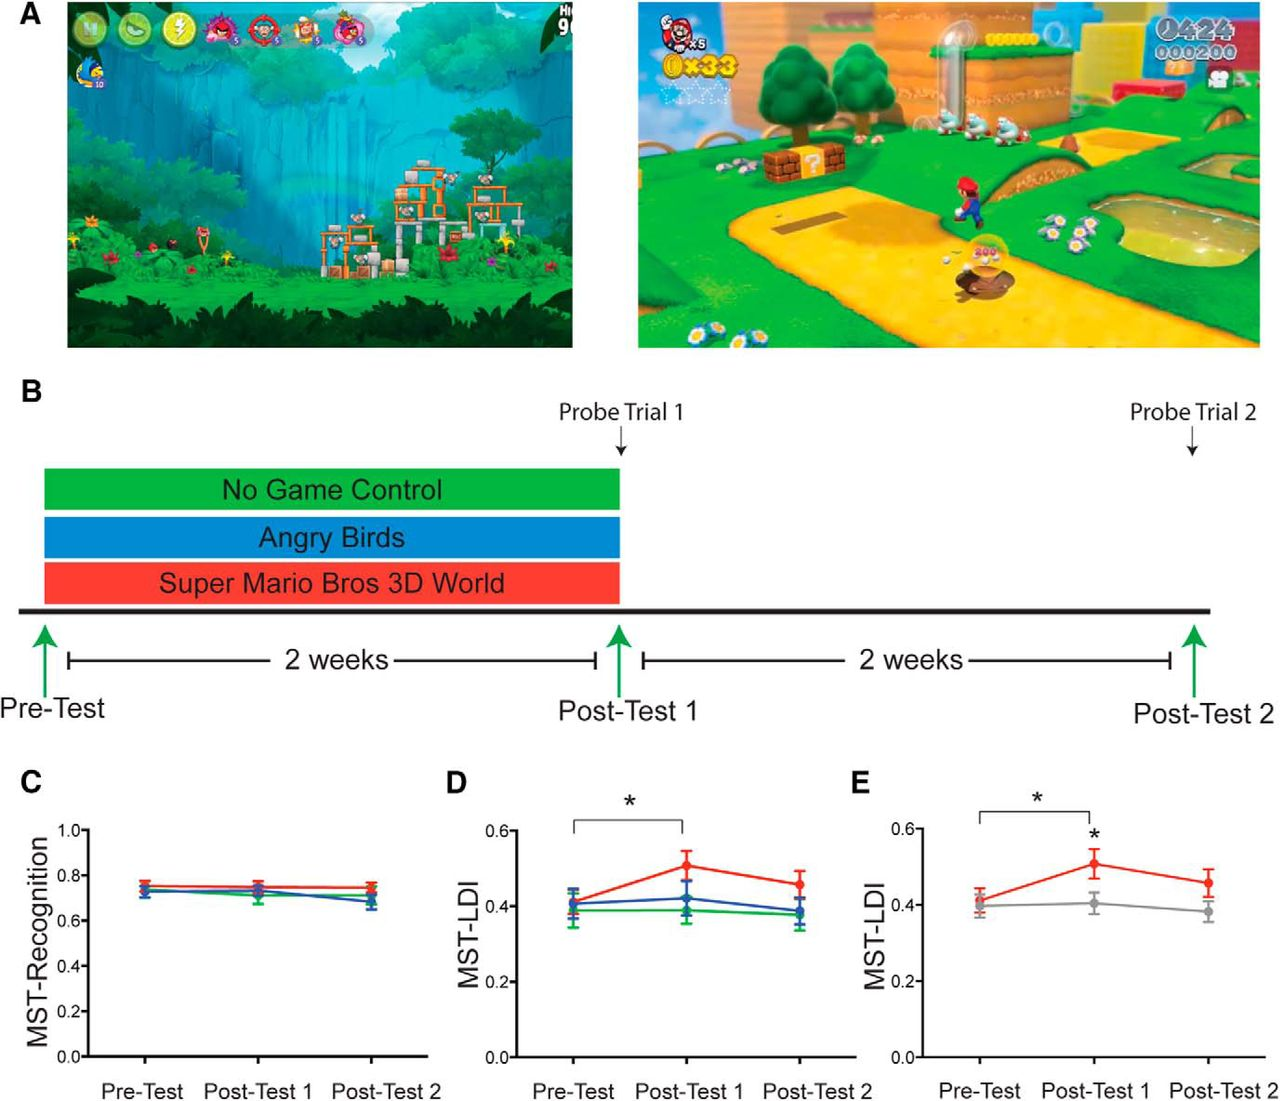 Virtual Environmental Enrichment through Video Games